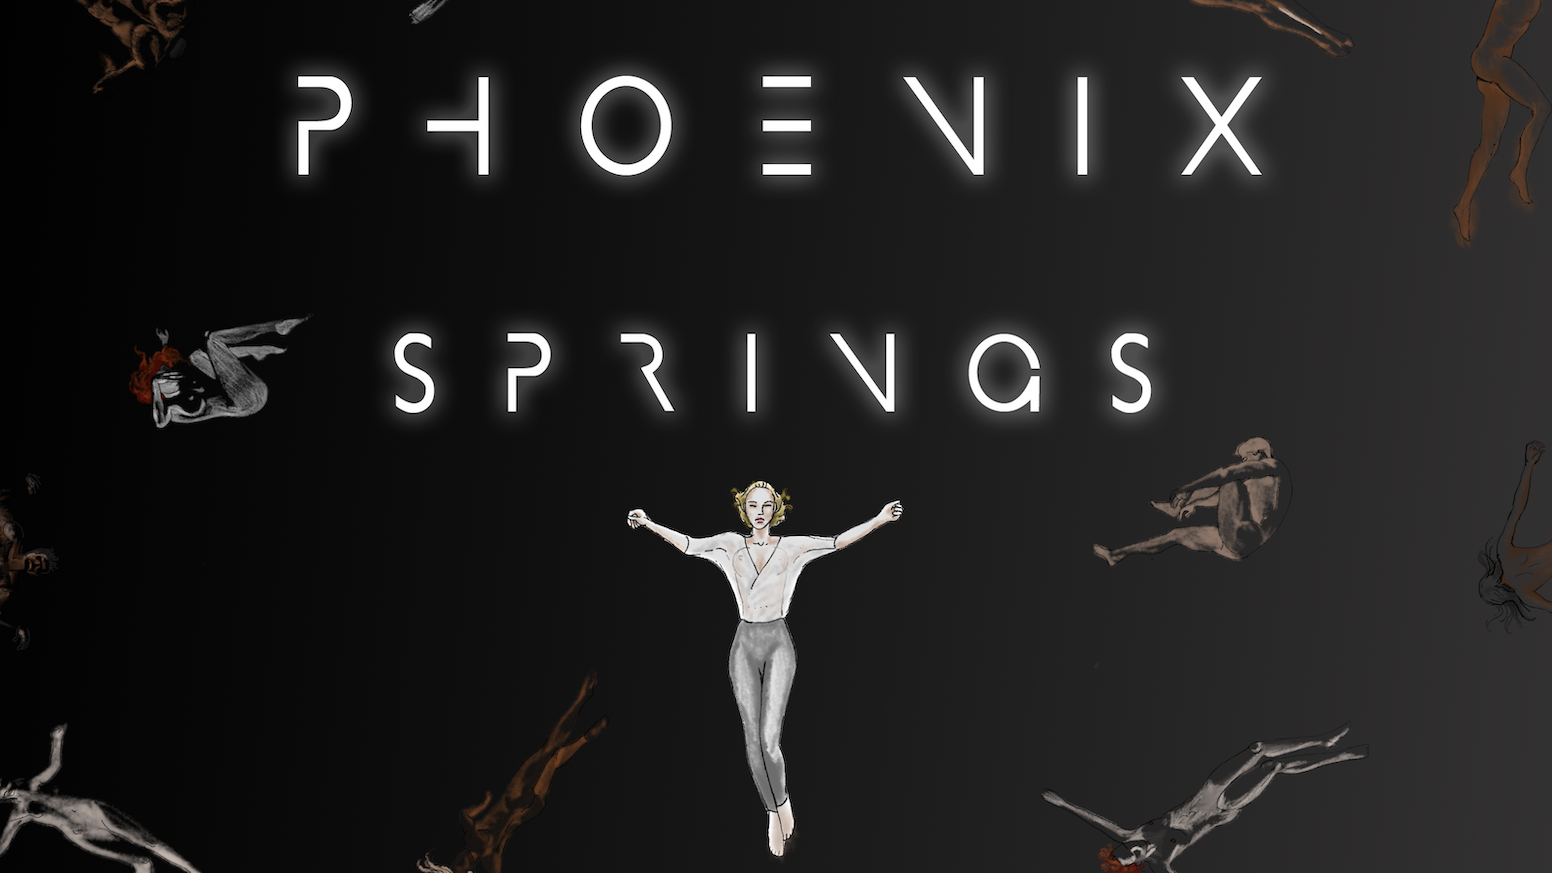 Stay awhile. Find yourself. Lose your mind. Welcome to Phoenix Springs.